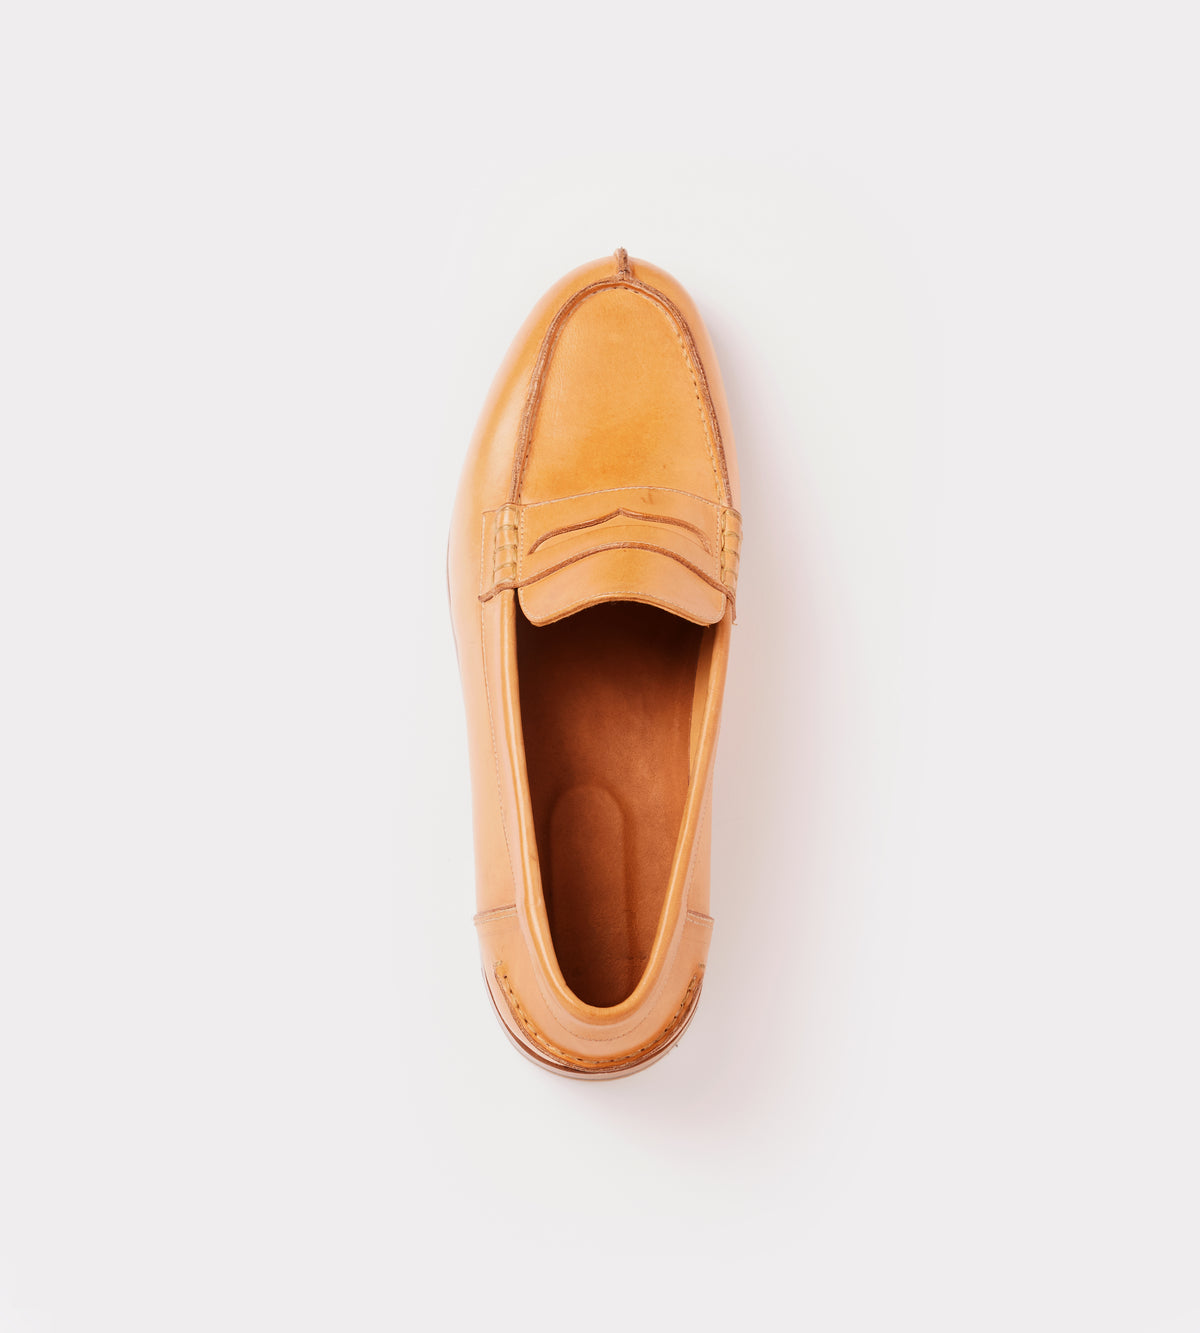 Natural calf leather moccasin top view